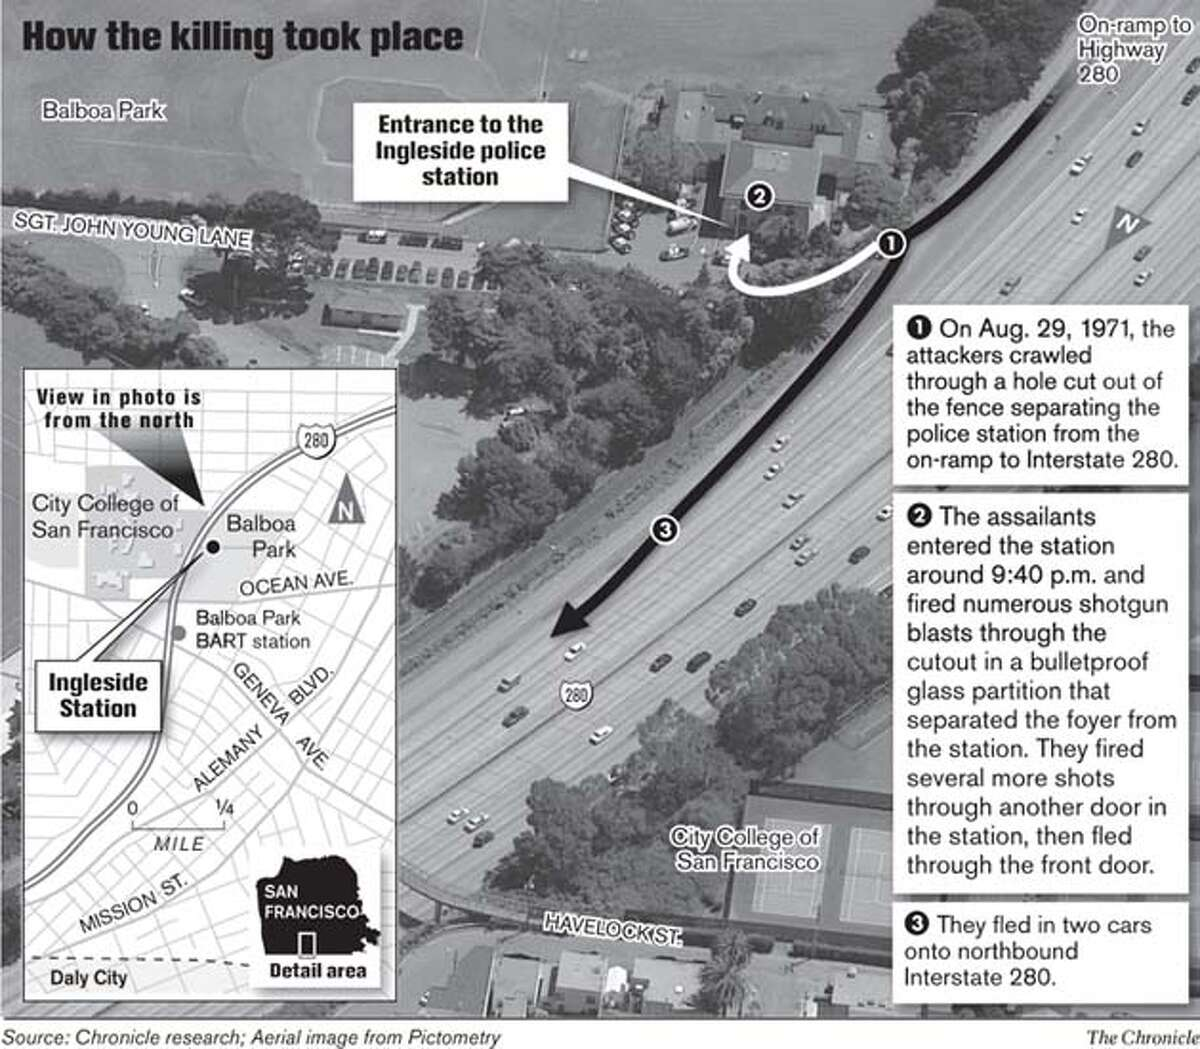 How the Killing Took Place. Chronicle Graphic